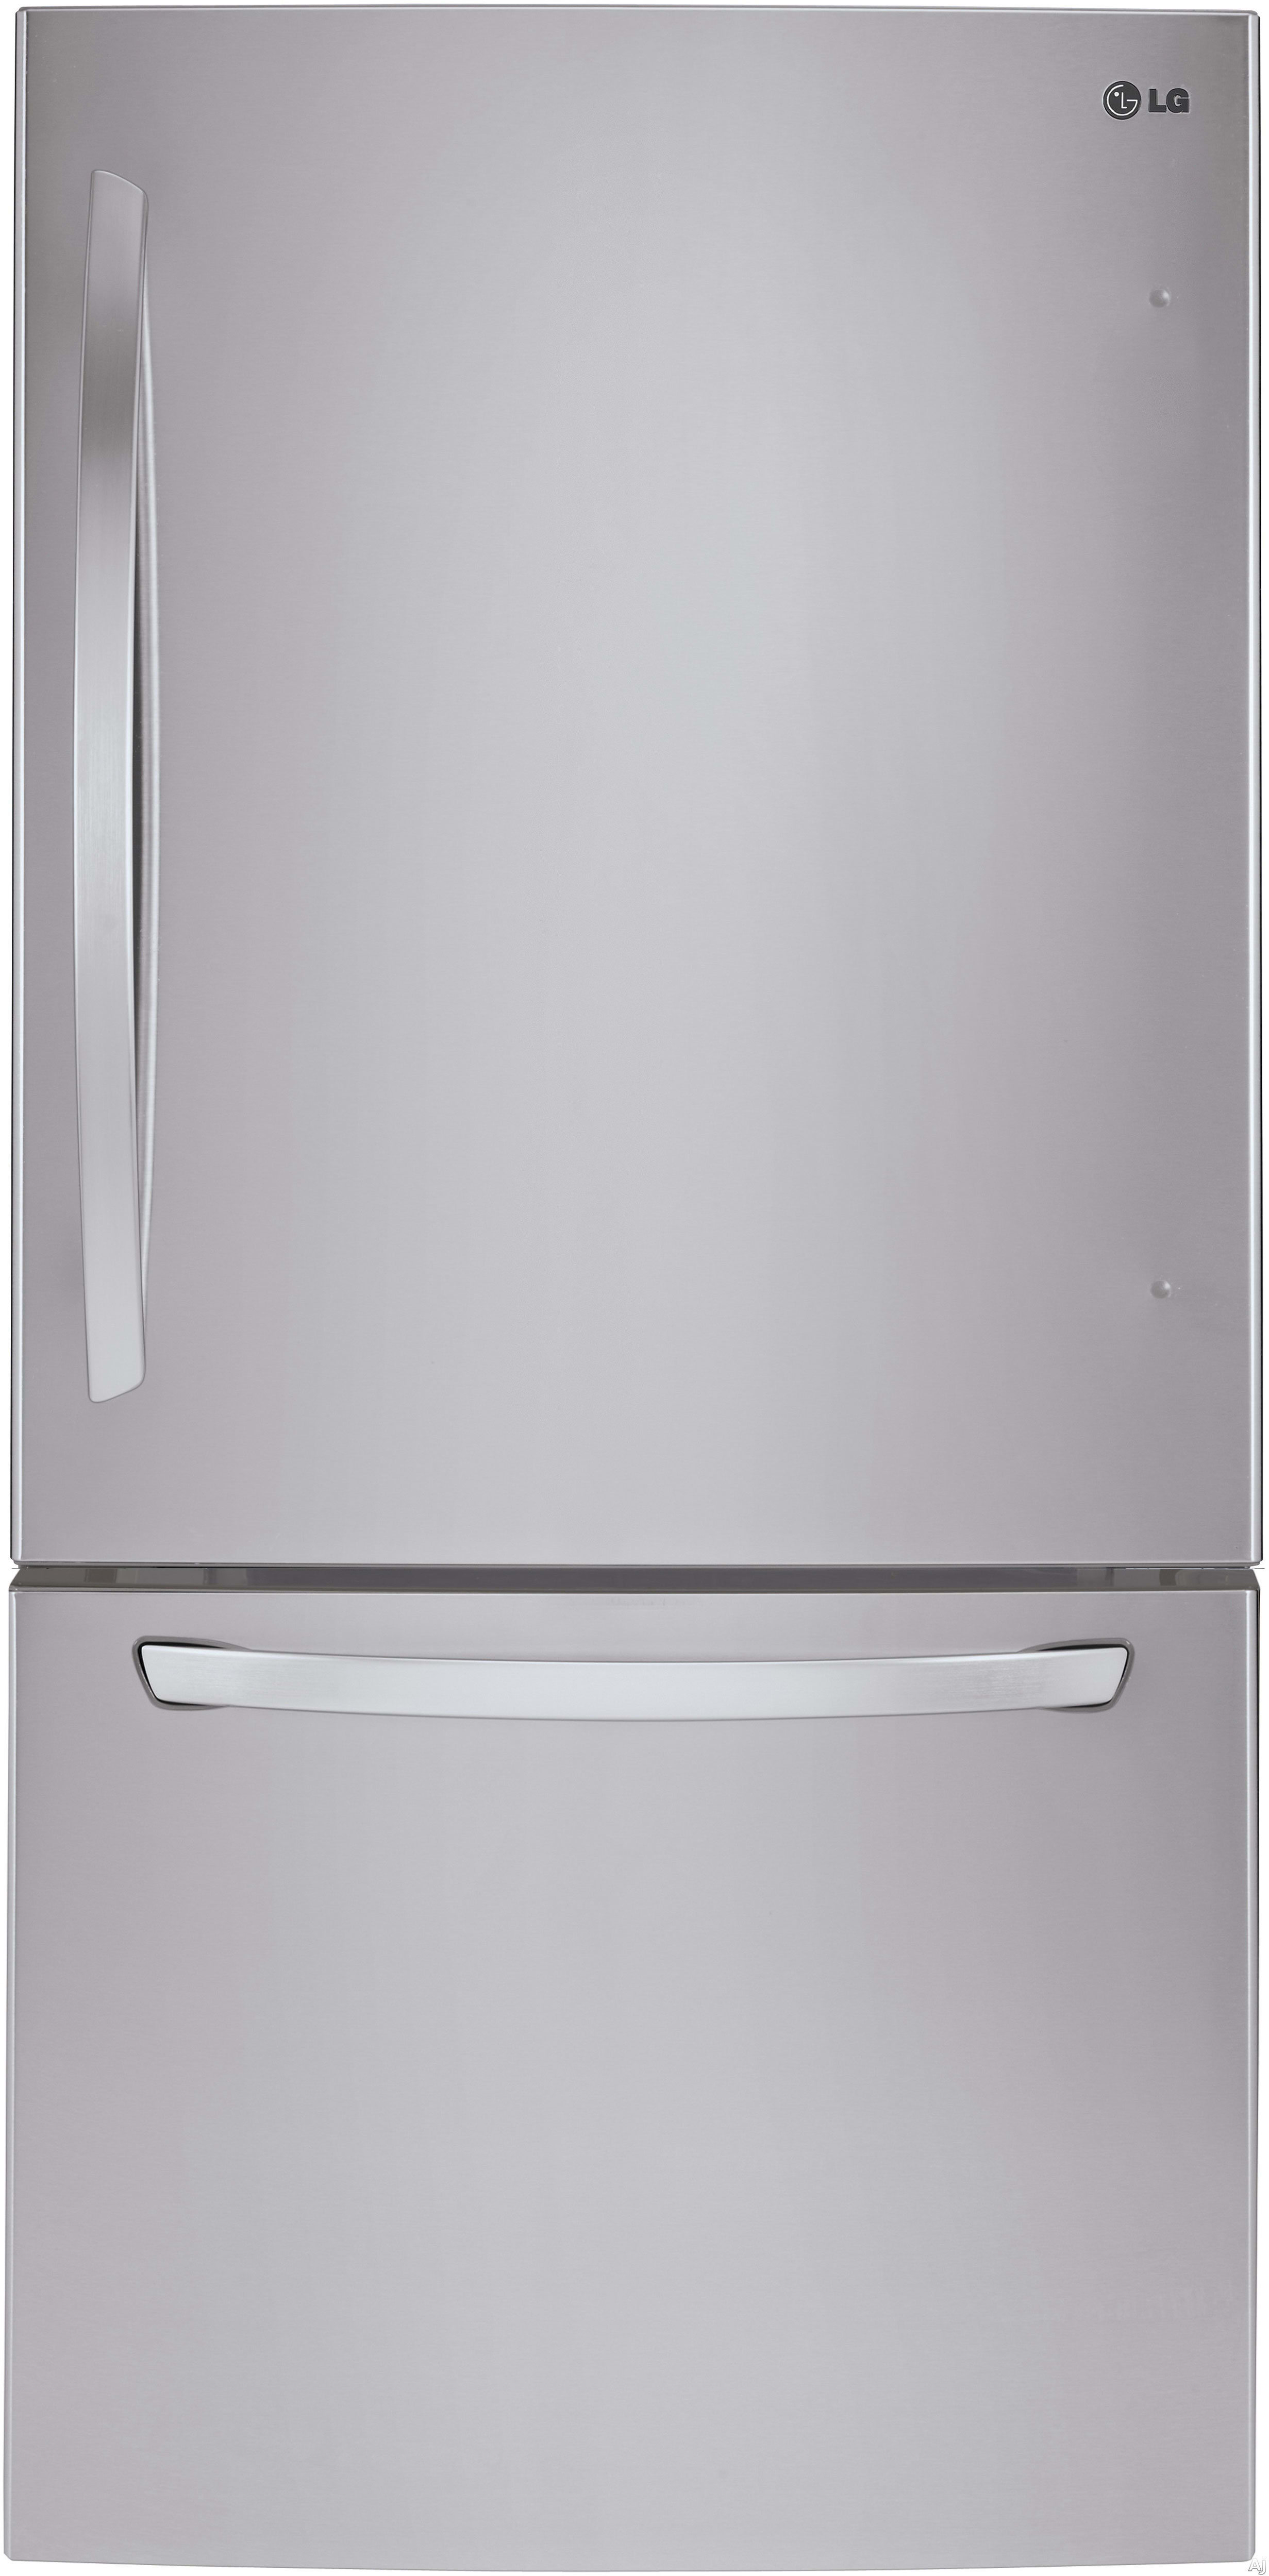 The LG LDCS24223S is the stainless steel version of this 24-cu.-ft. fridge.